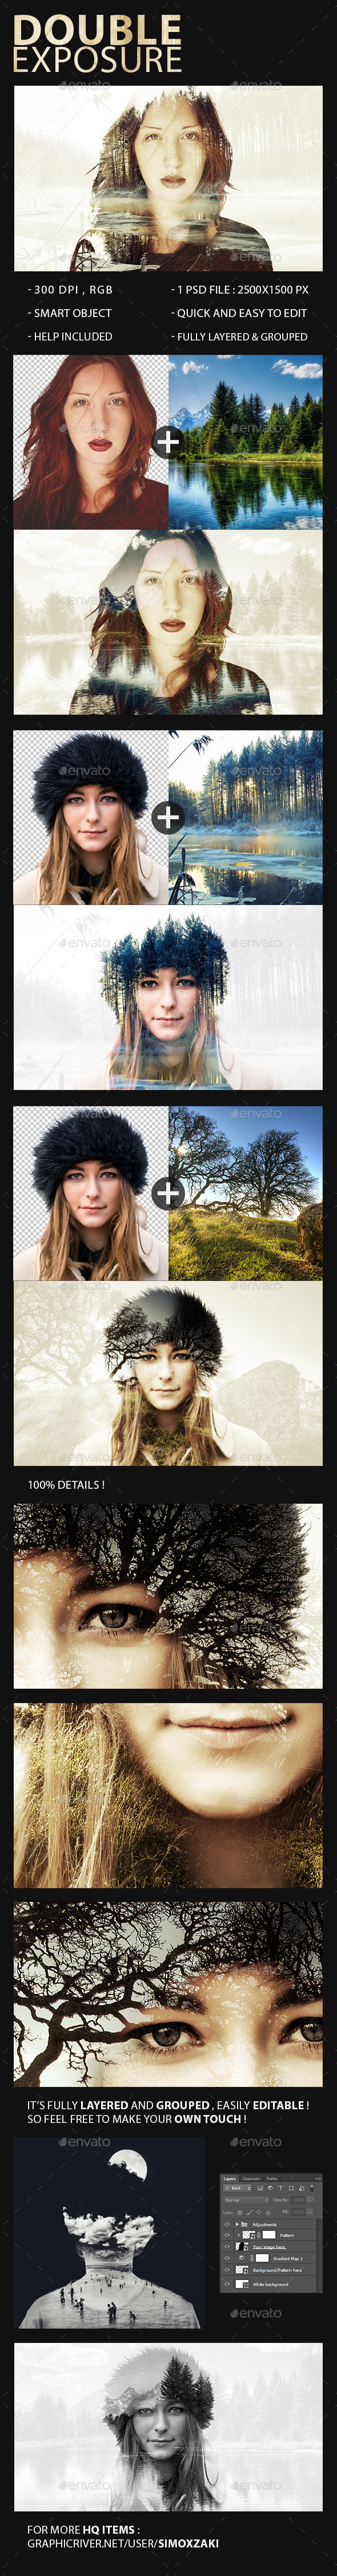 Double Exposure Maker - Photo Templates Graphics